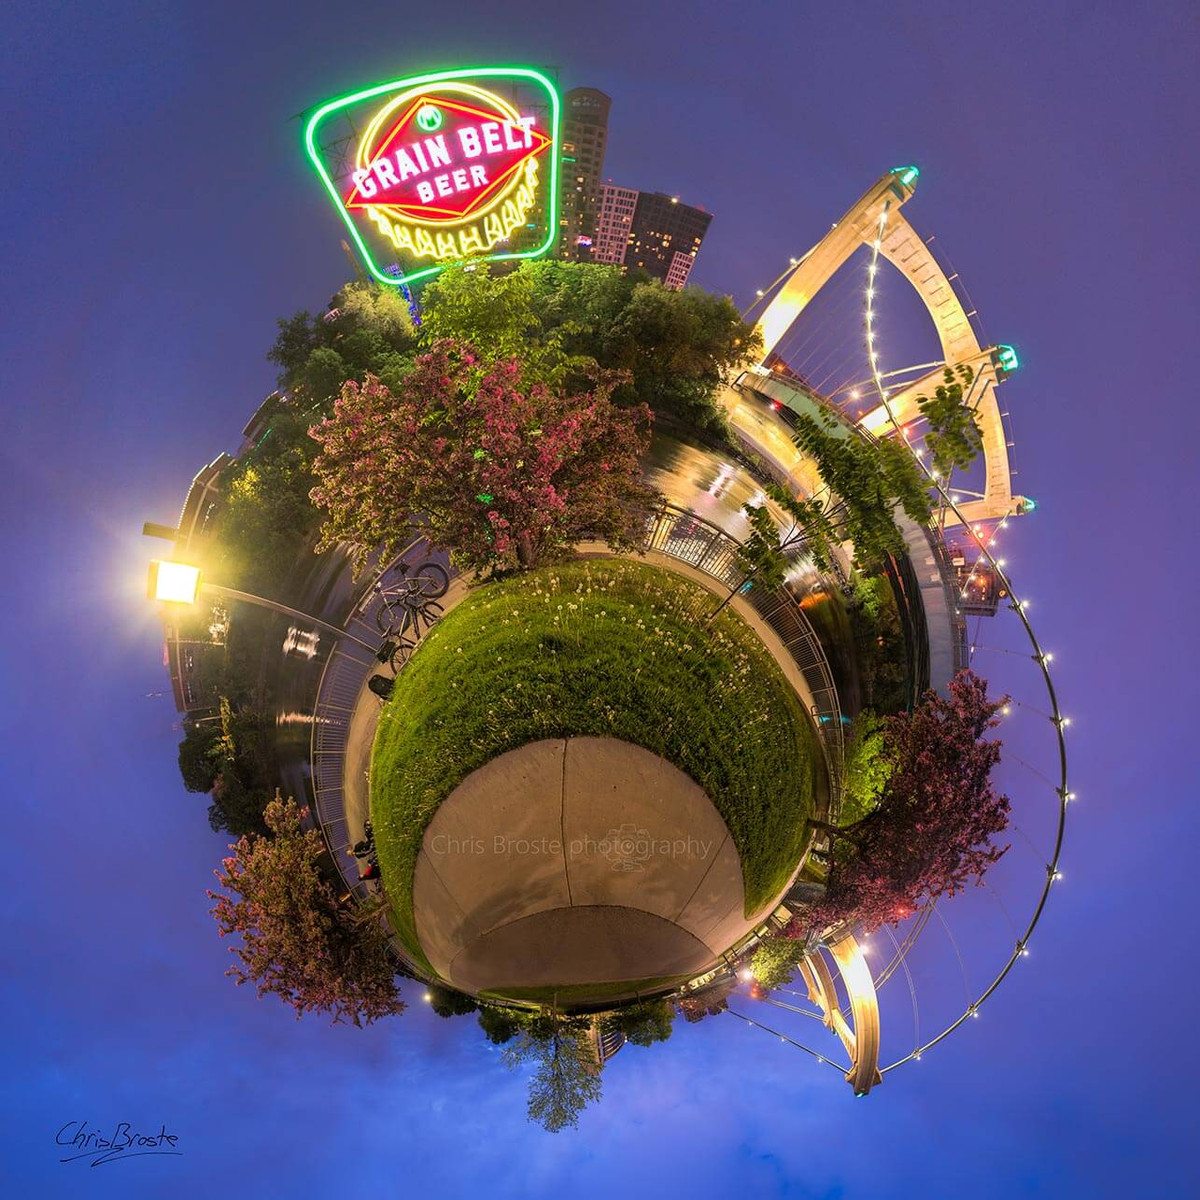 The iconic Grain Belt sign in Northeast Minneapolis 360 degree planet panorama photograph.